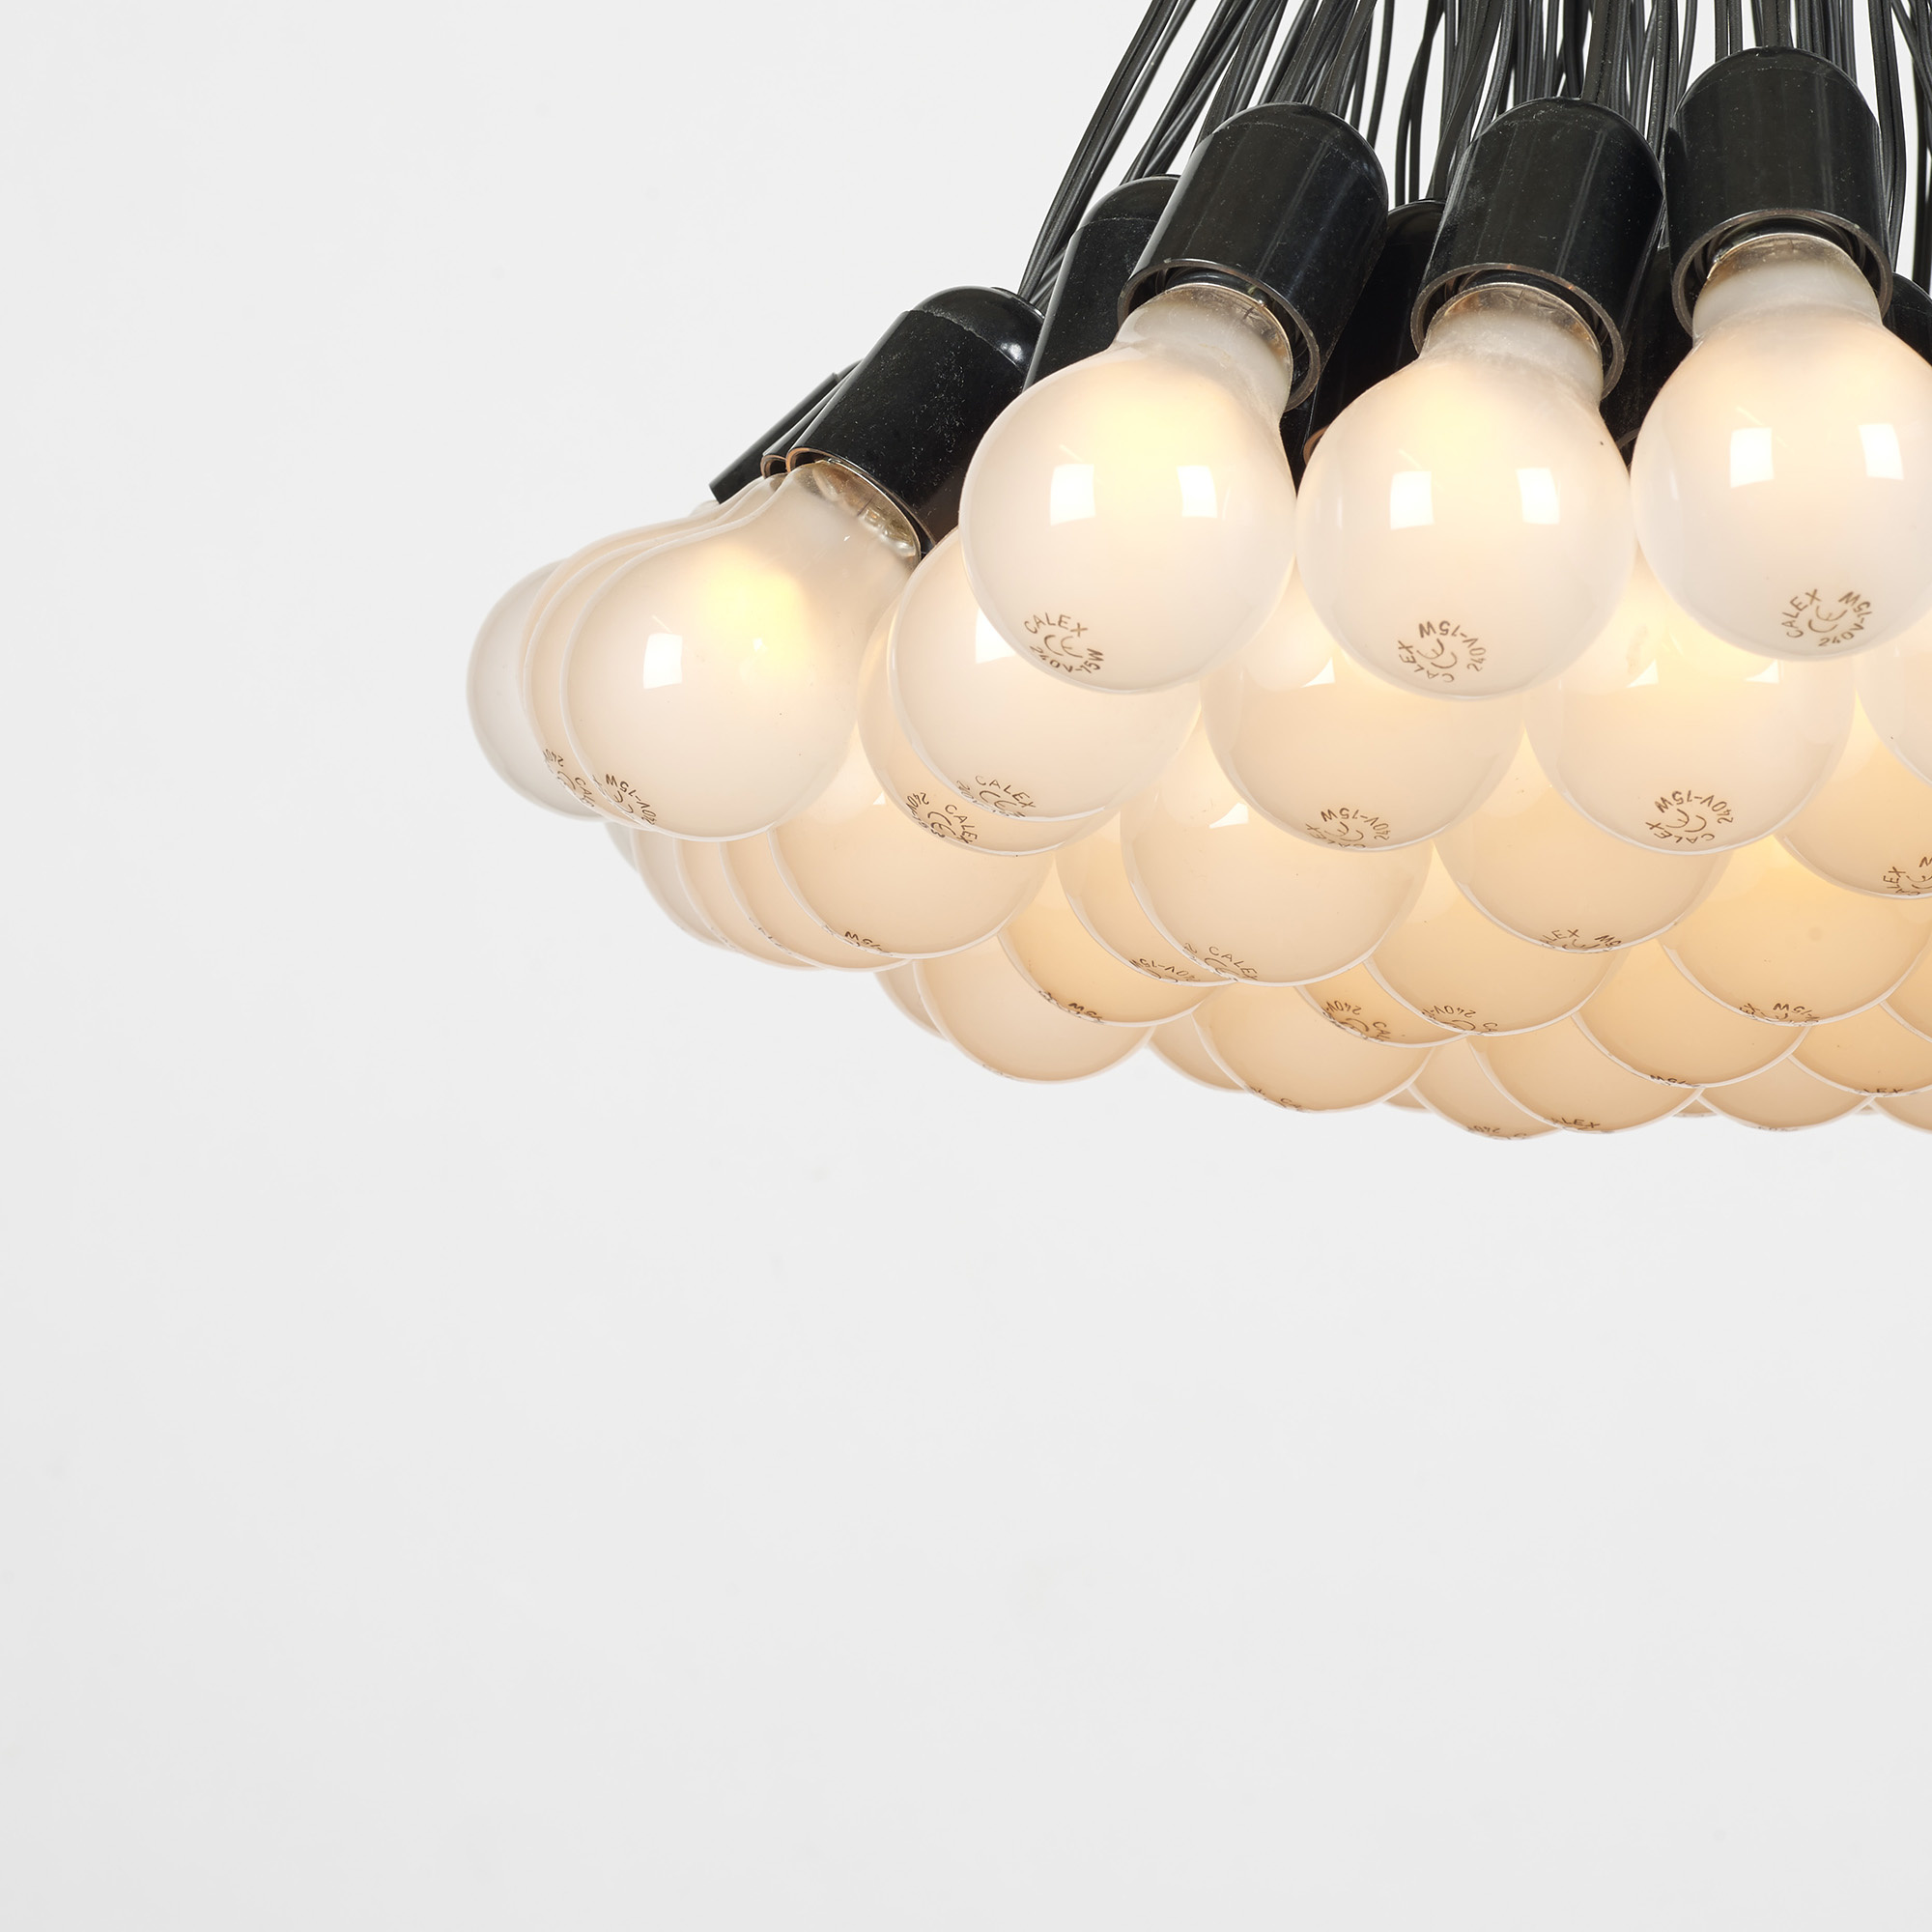 261 rody graumans 85 lamps chandelier modern design 28 march 261 rody graumans 85 lamps chandelier 2 of 3 aloadofball Choice Image